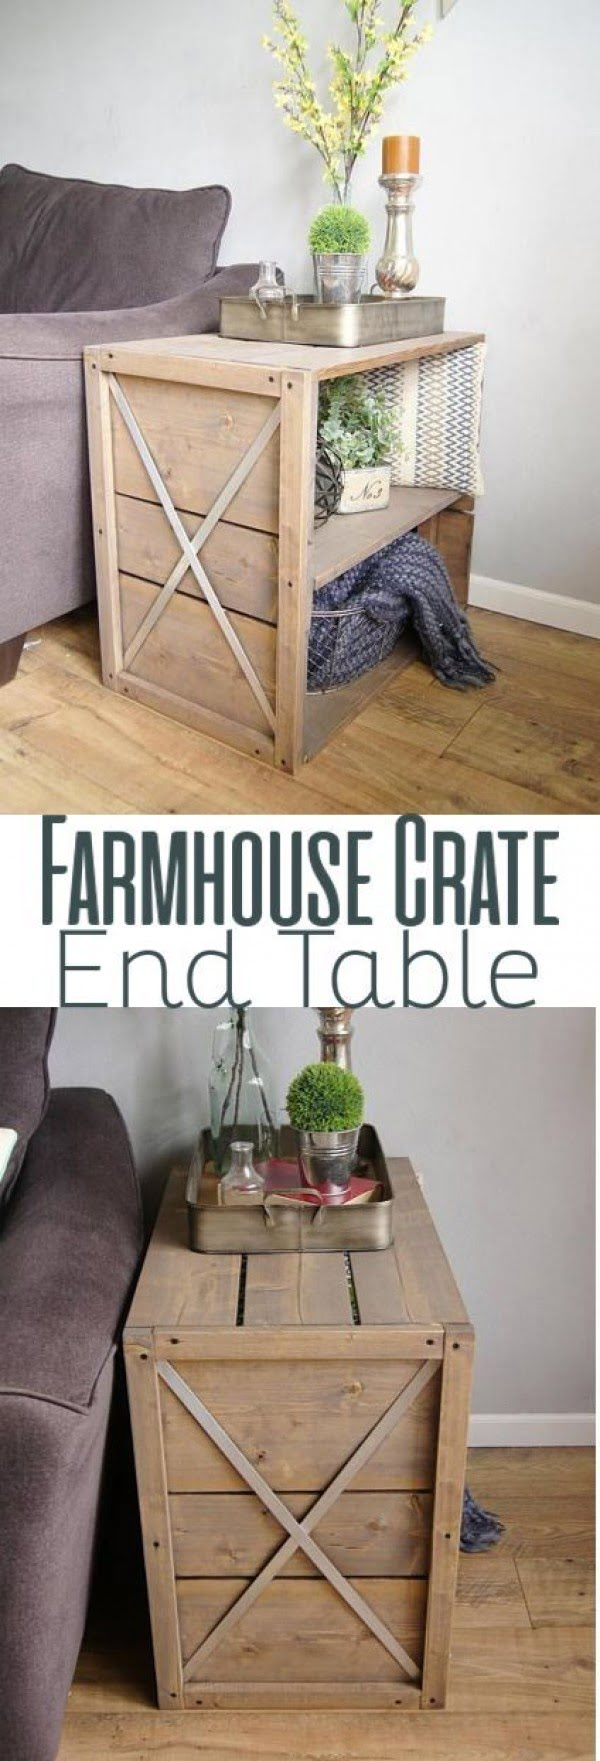 Check out the tutorial how to build a #DIY crate #farmhouse end table #HomeDecorIdeas